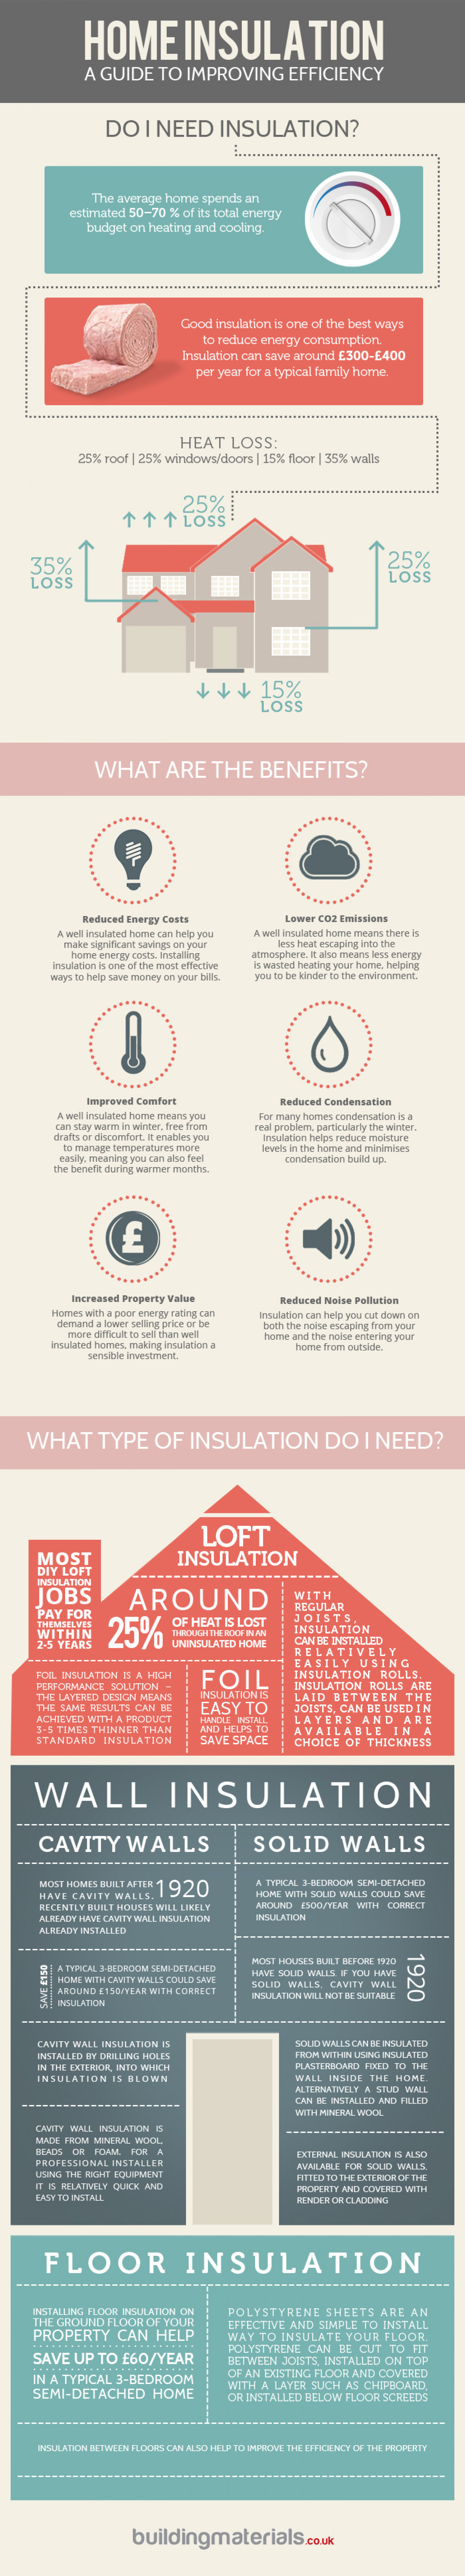 Home Insulation Infographic